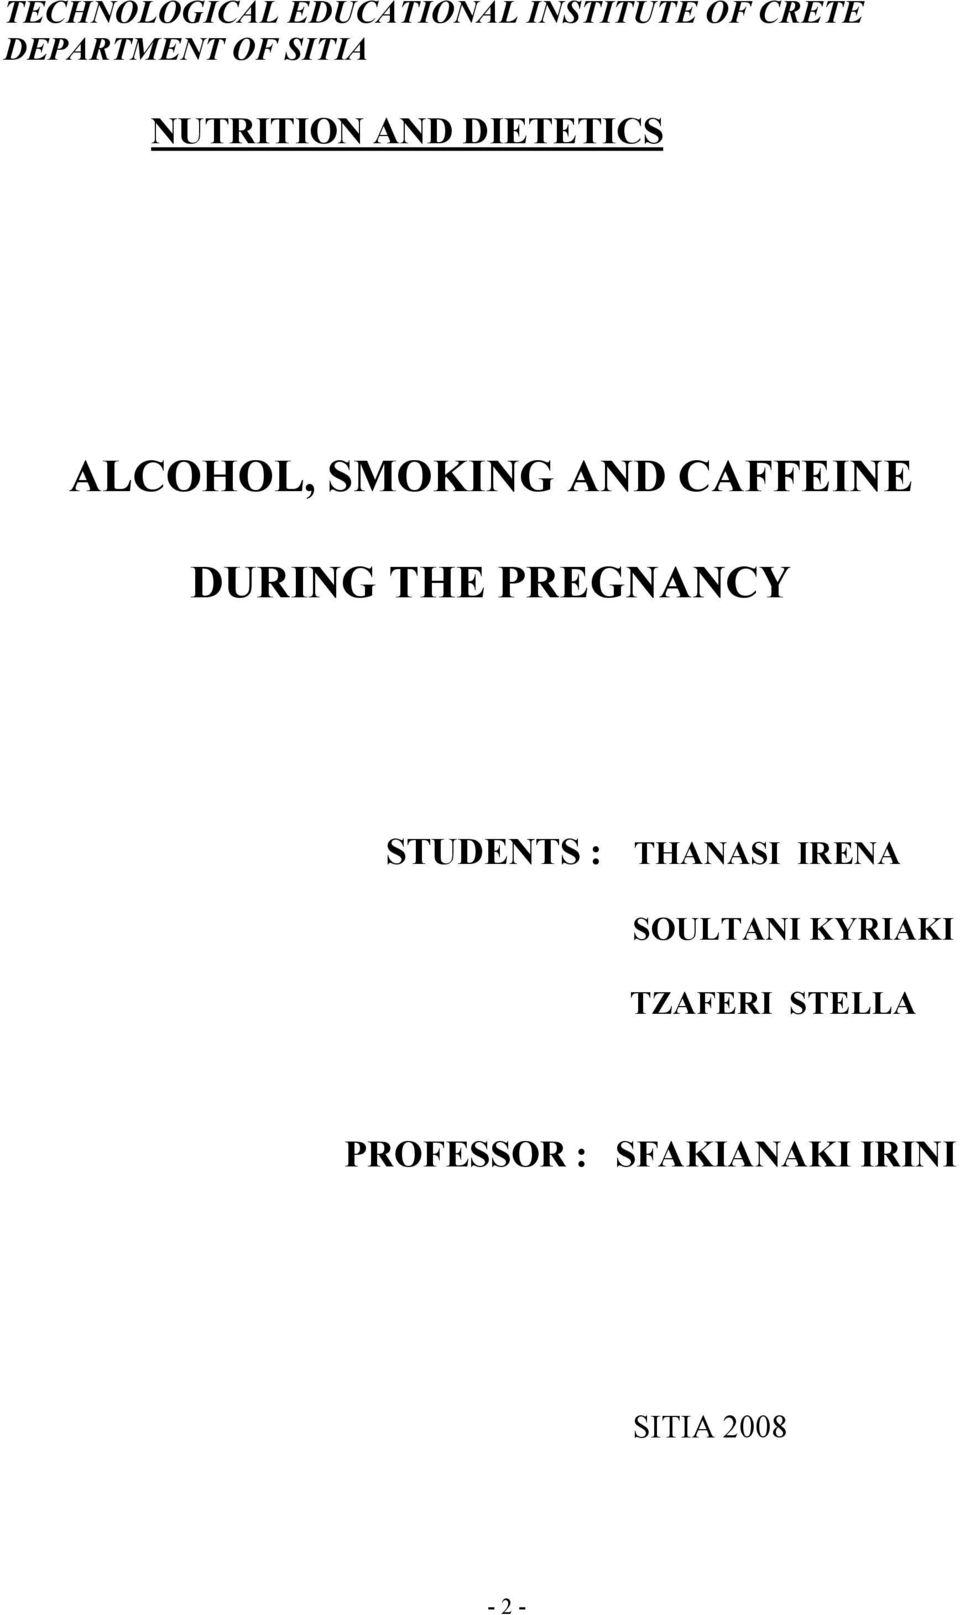 DURING THE PREGNANCY STUDENTS : THANASI IRENA SOULTANI